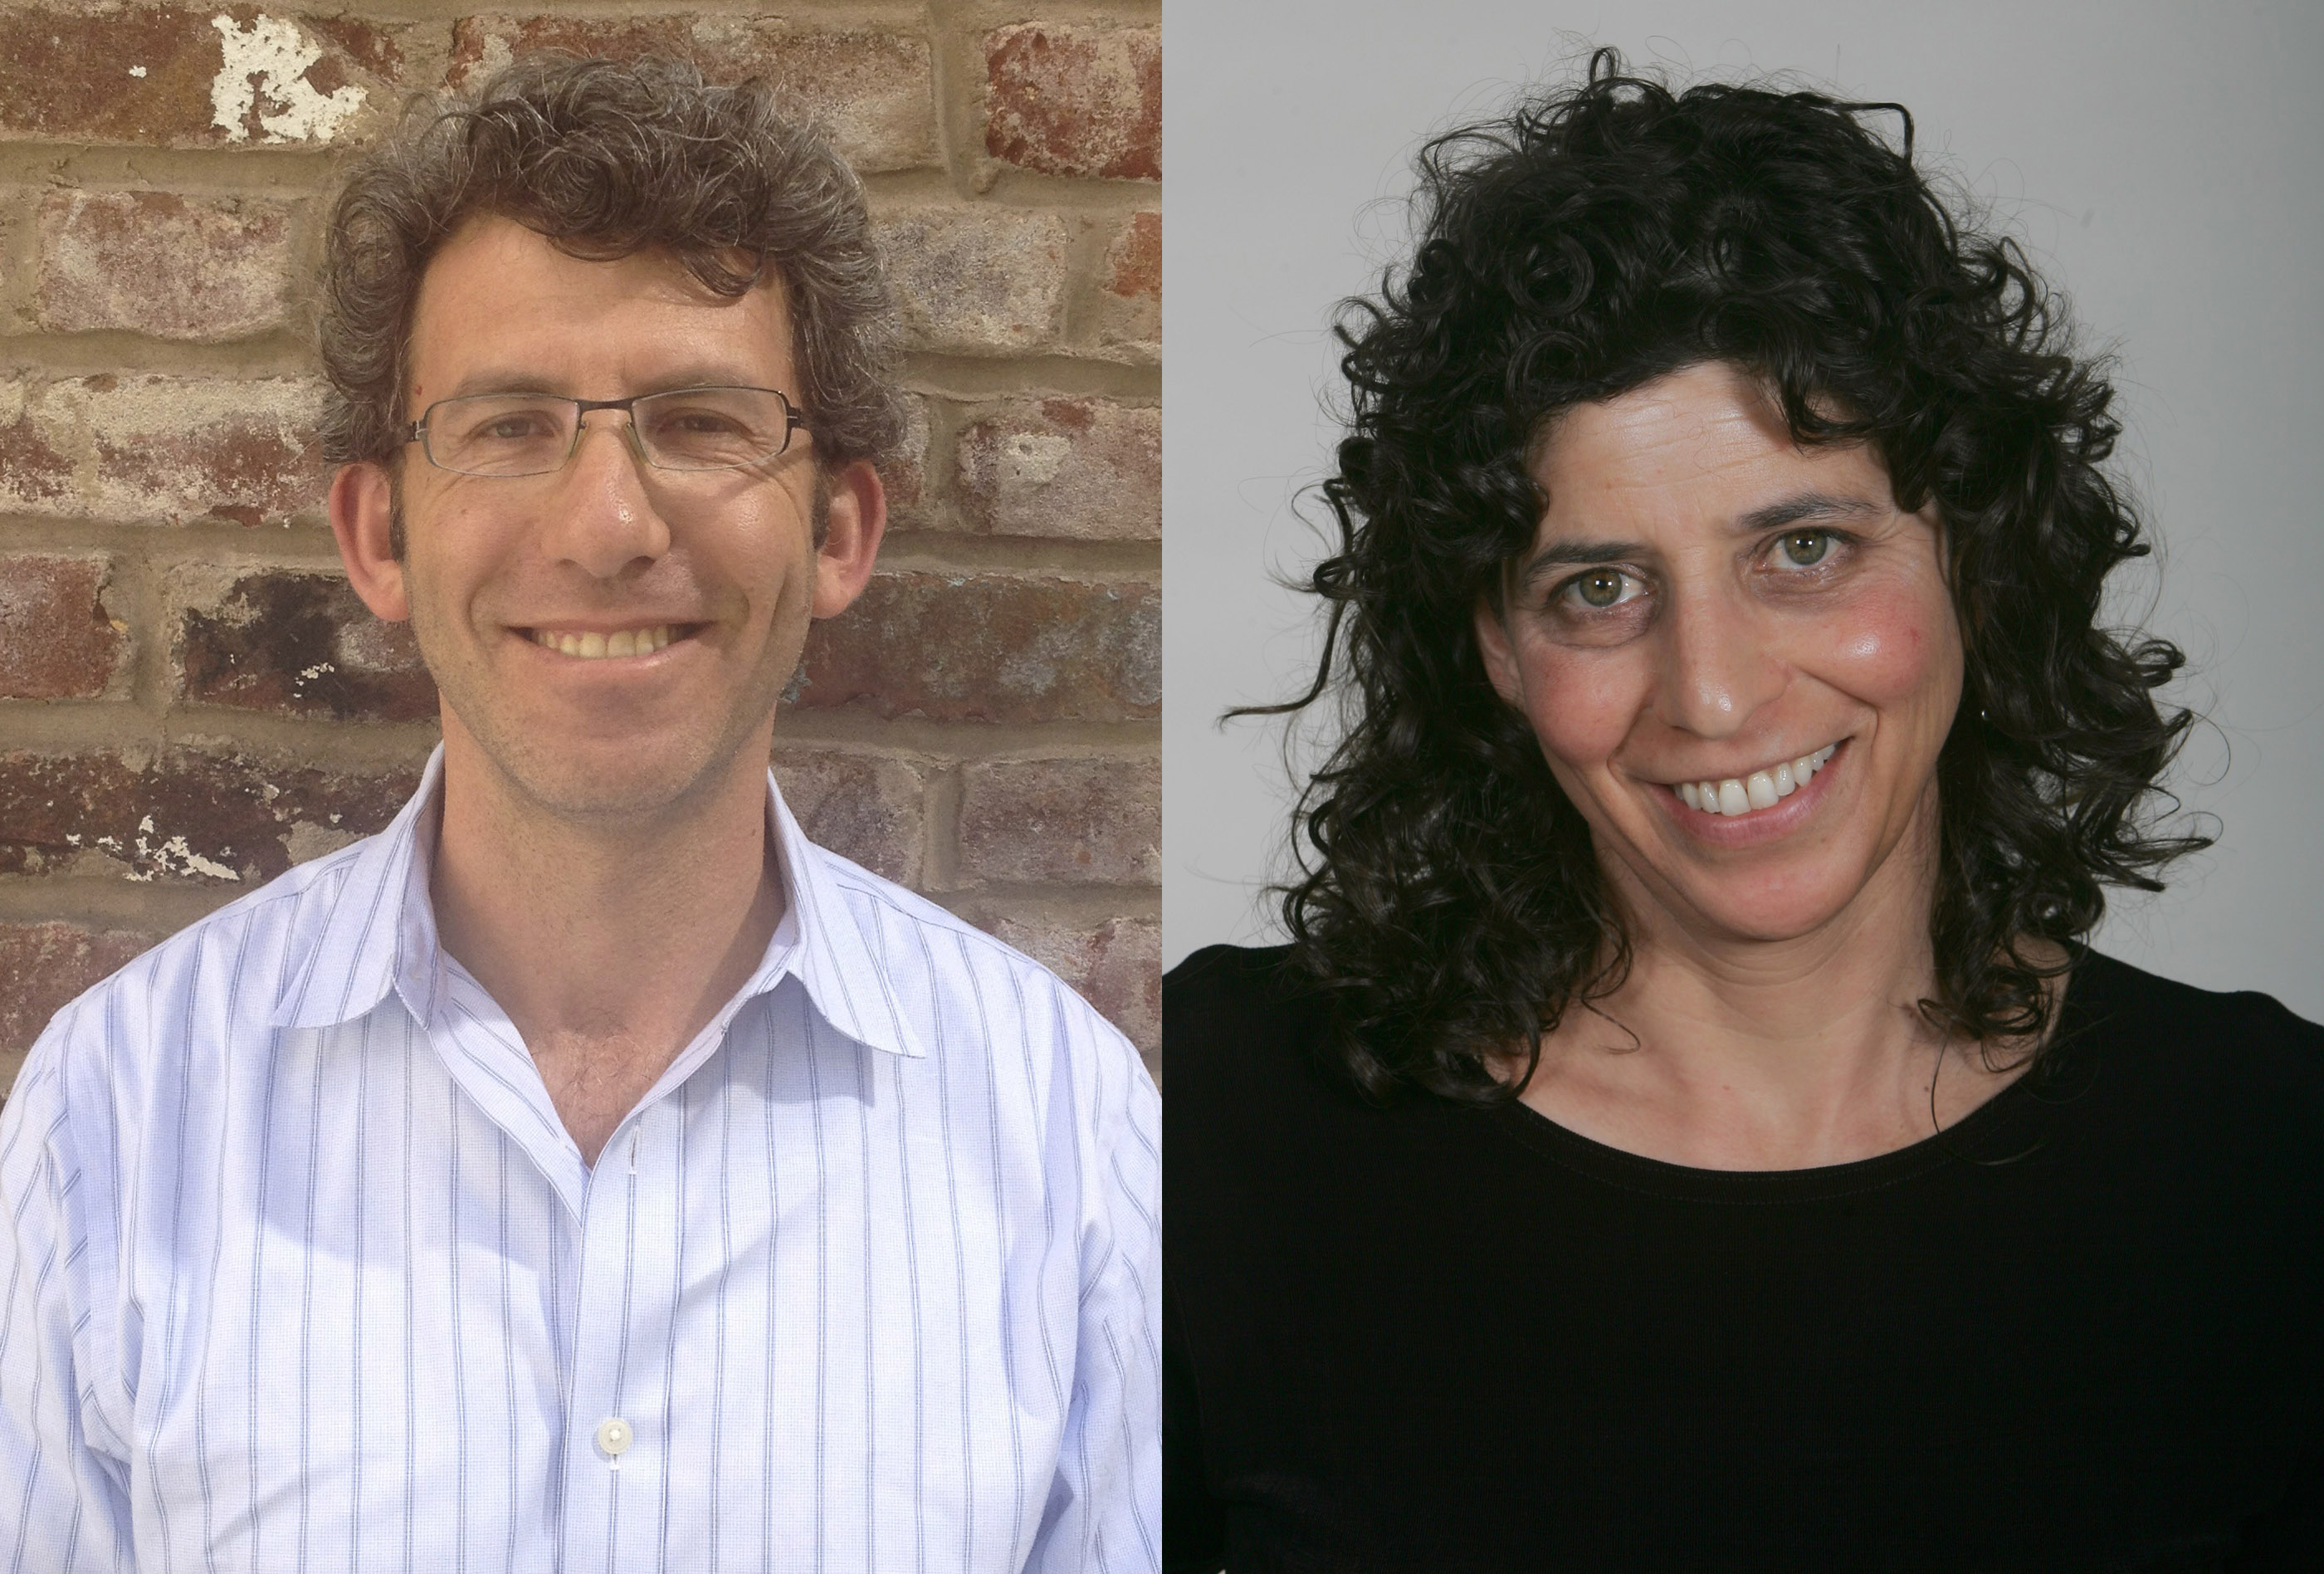 Daniel Schifrin and Mariss Moss are this year's winner and runner up, respectively, of the Anne and Robert Cowan Writers' Prize.